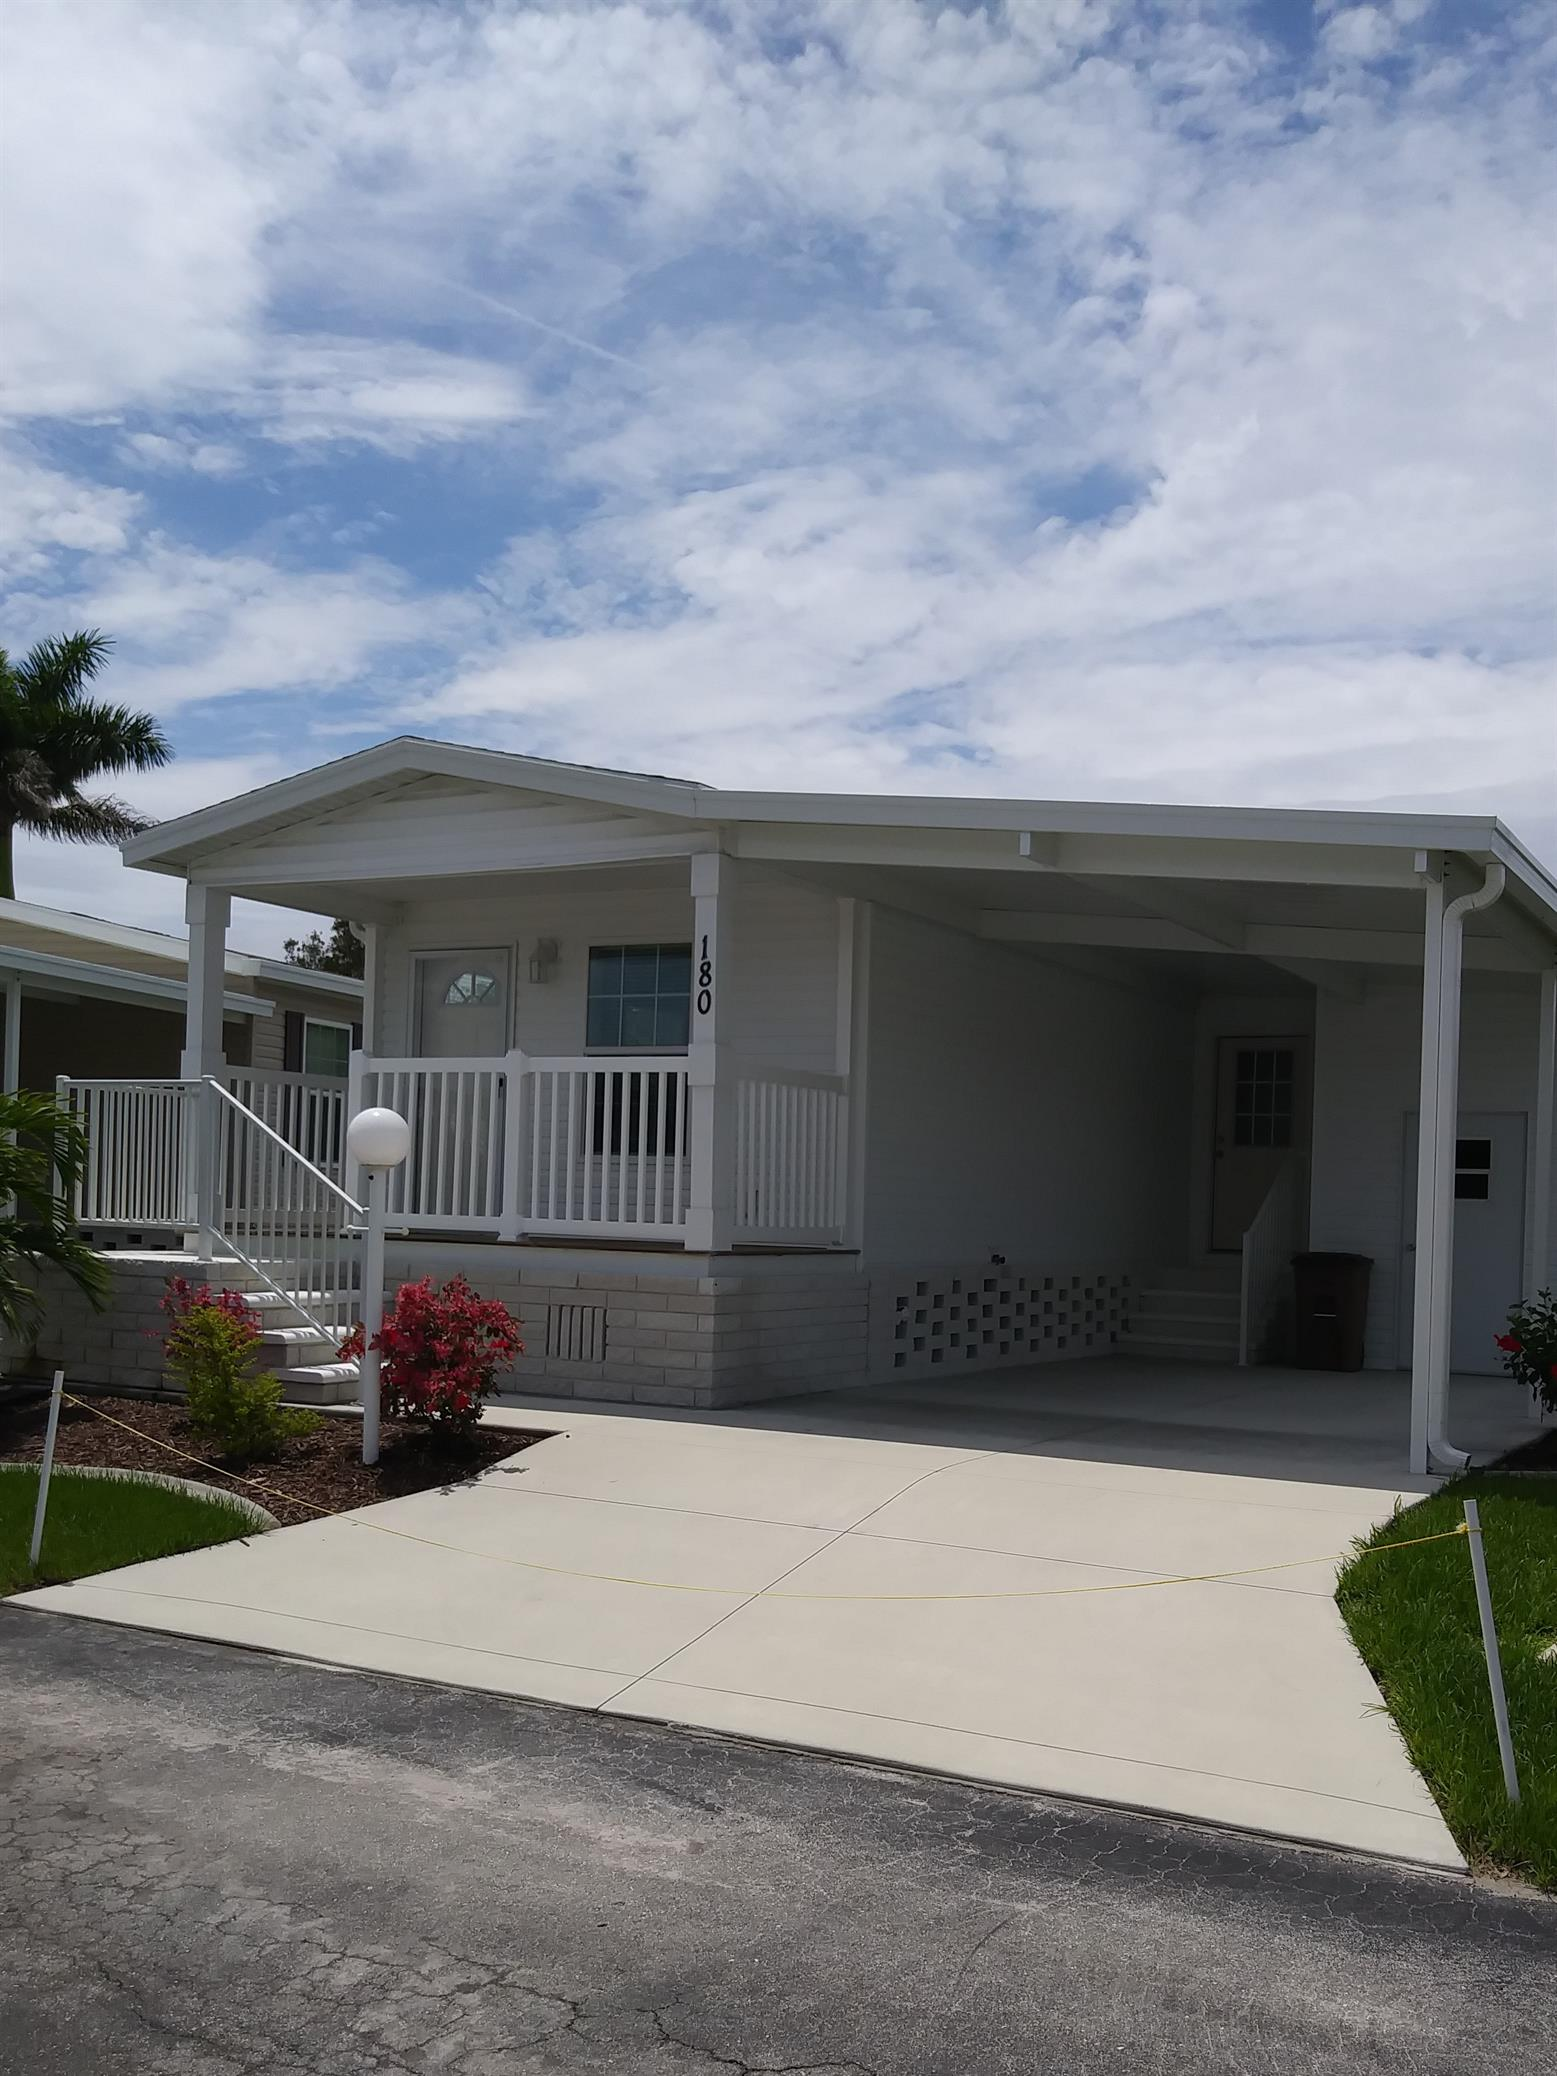 $1250./month based on annual rental with first month free!  Security deposit and background check required. Sorry no seasonal rentals. Call for details.